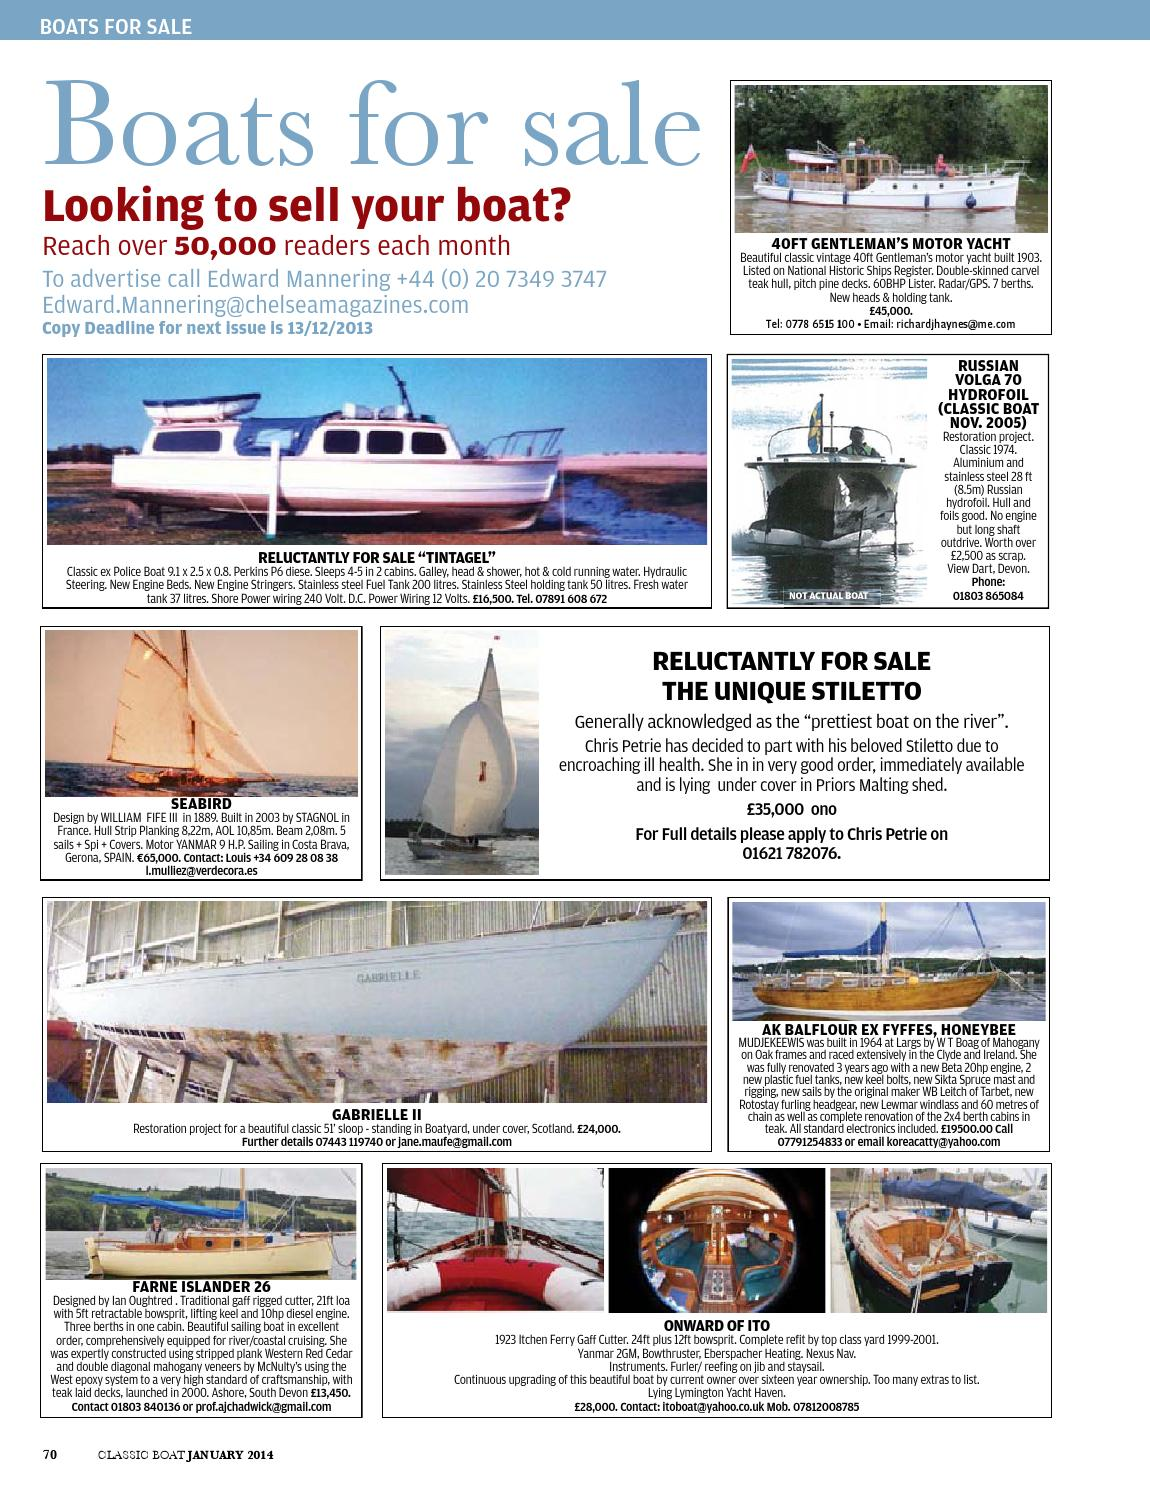 Clic Boat January 2014 by The Chelsea Magazine Company ... Wiring Your Boat on boat motors, boat livewell setup, boat speedometer not working, boat intake, boat grounding, boat wood, boat cabinets, boat winterizing, boat meters, boat ignition, boat dash, boat starter, boat plumbing, boat tools, boat equipment, boat oil, boat building lumber, boat doors, boat bezels, boat audio,